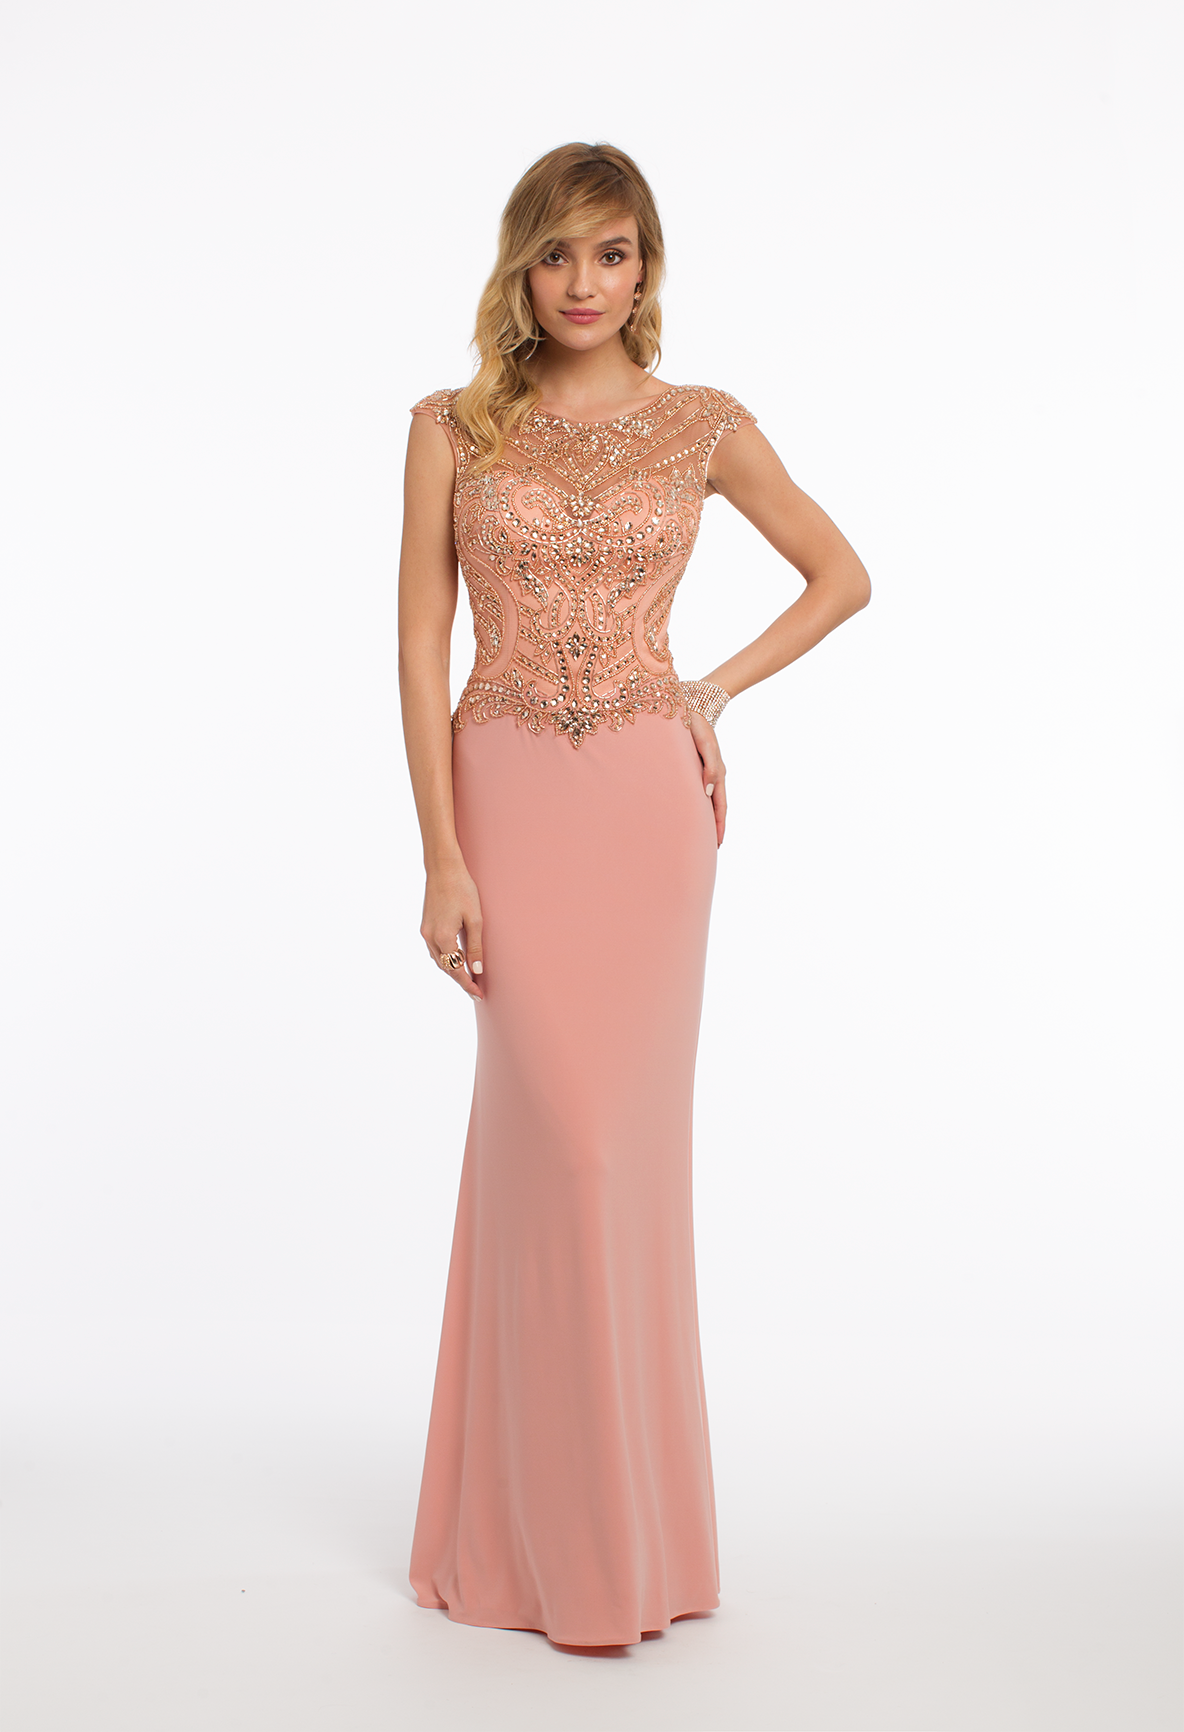 15db0502291 This formal evening gown finds the balance between simplicity and  statement  The illusion beaded neckline